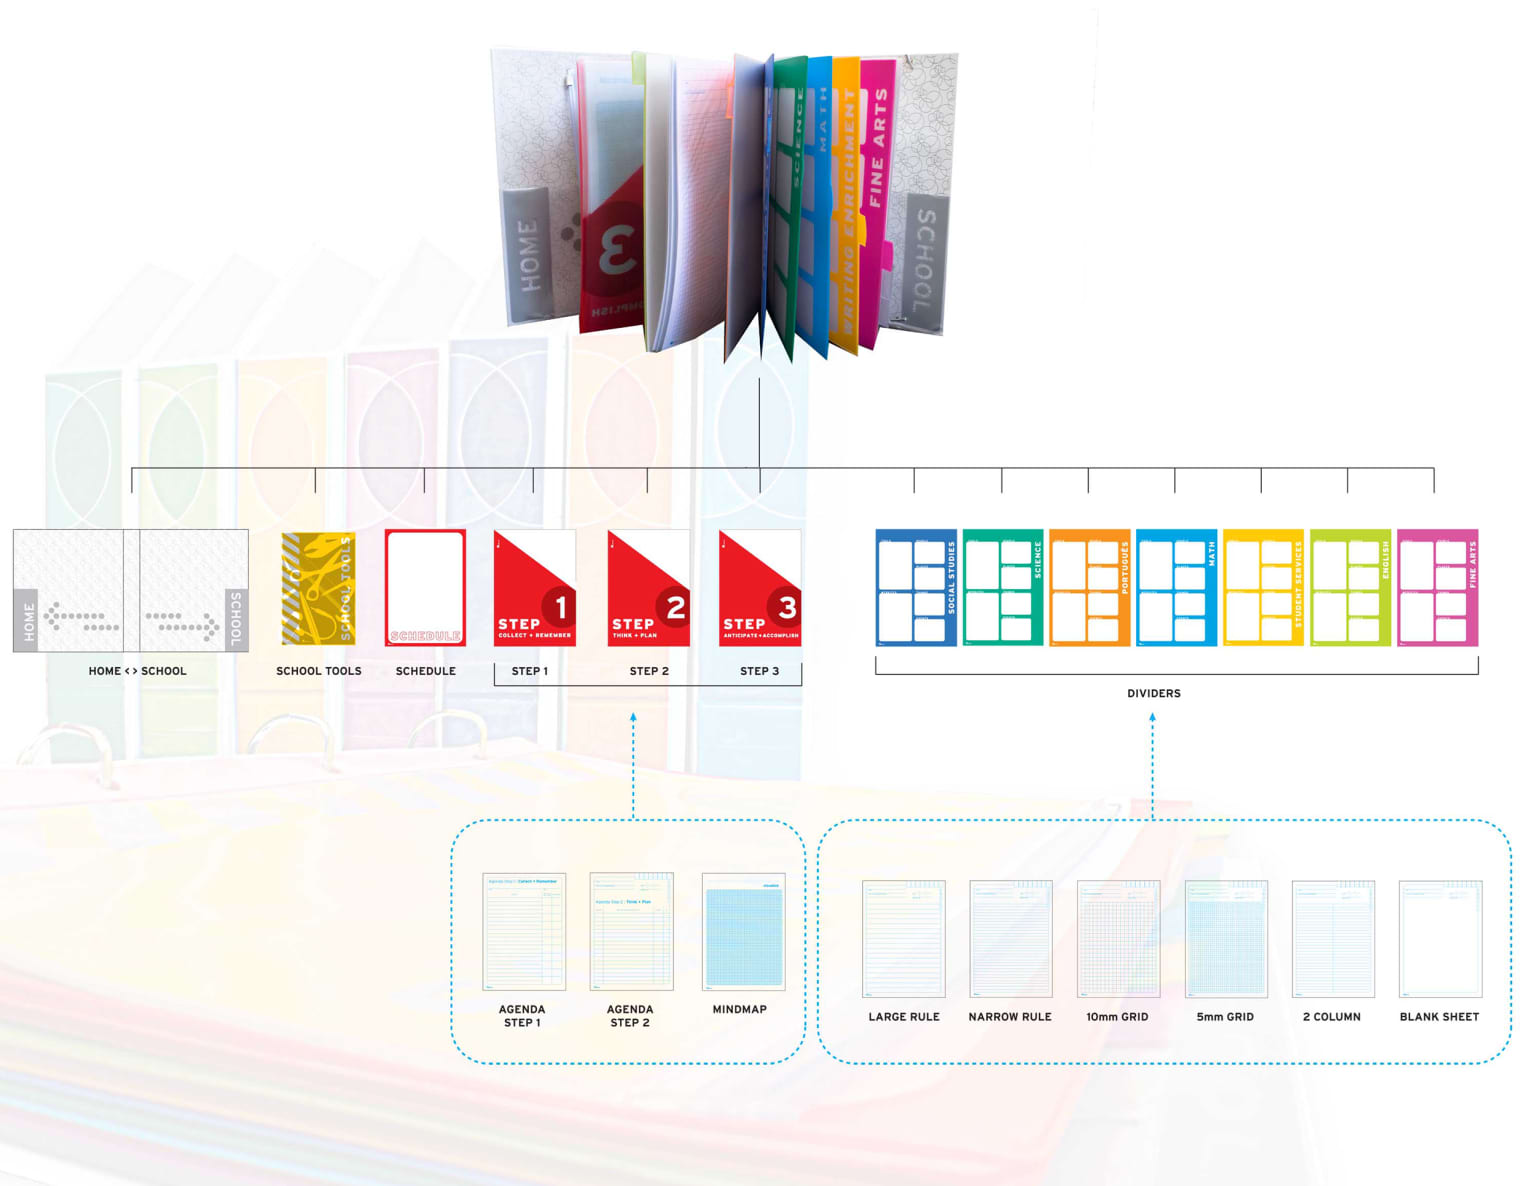 EDUCATION PRODUCT DESIGN;  Discovery Learning System